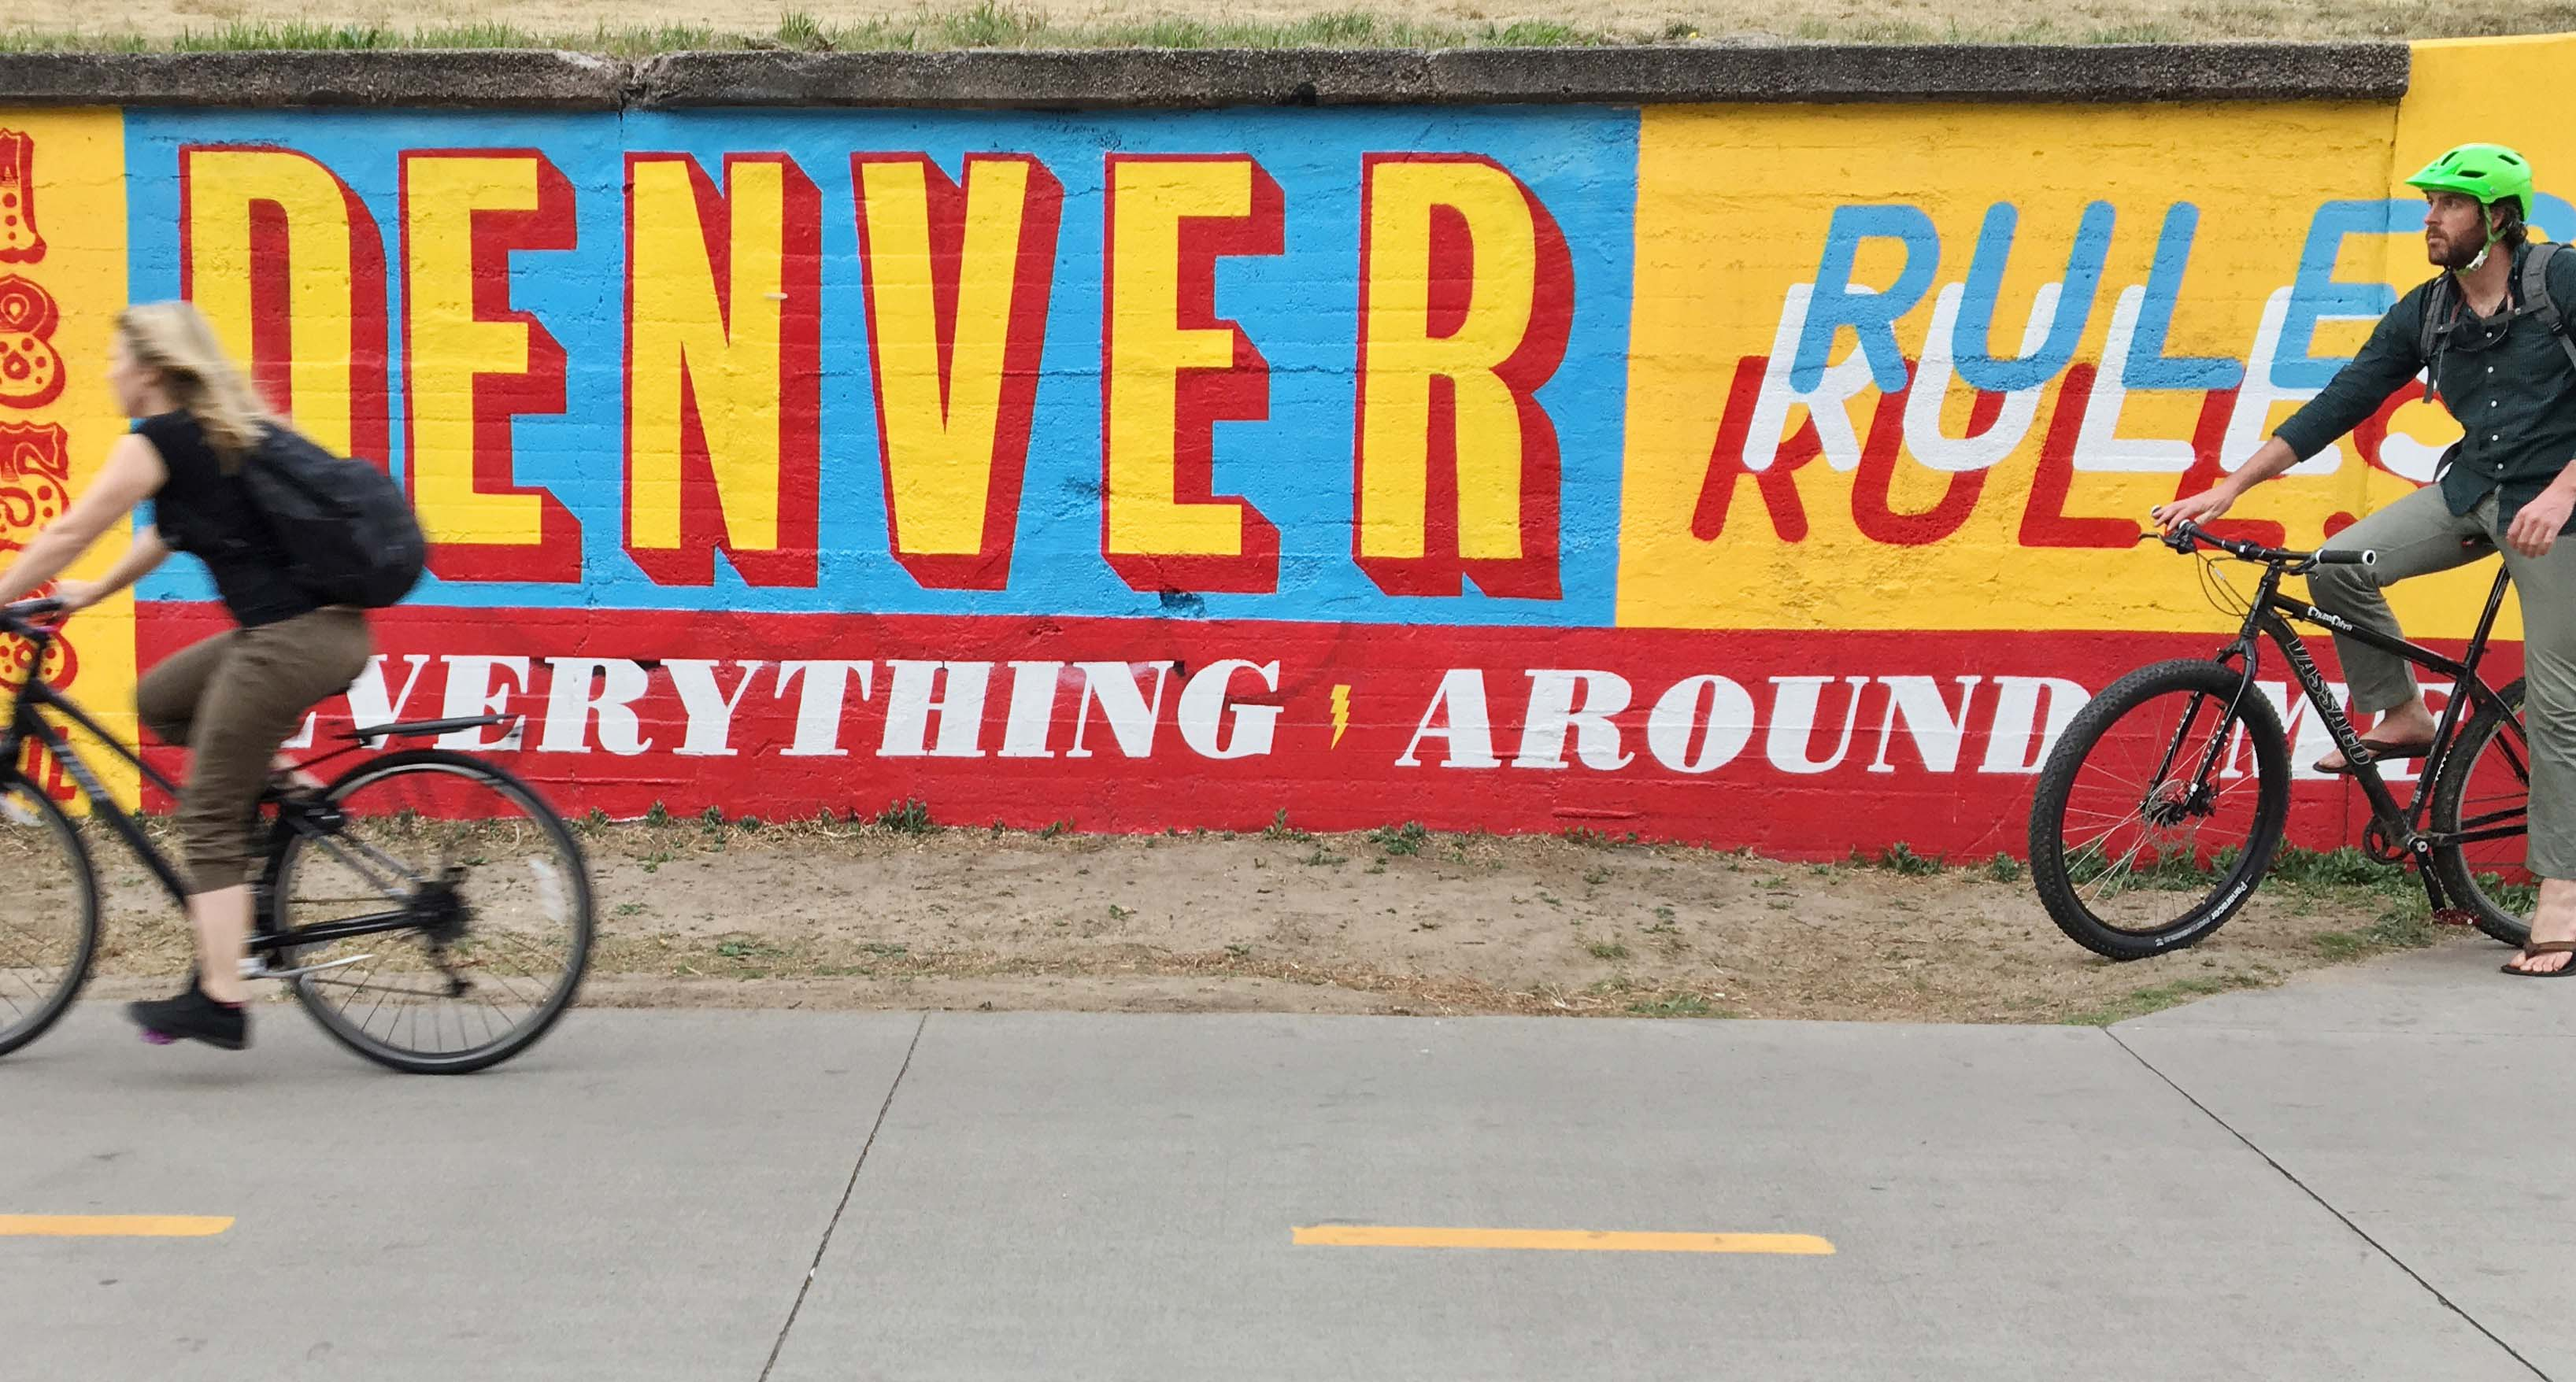 Denver Graphic Design Mural by Nigel Penhale